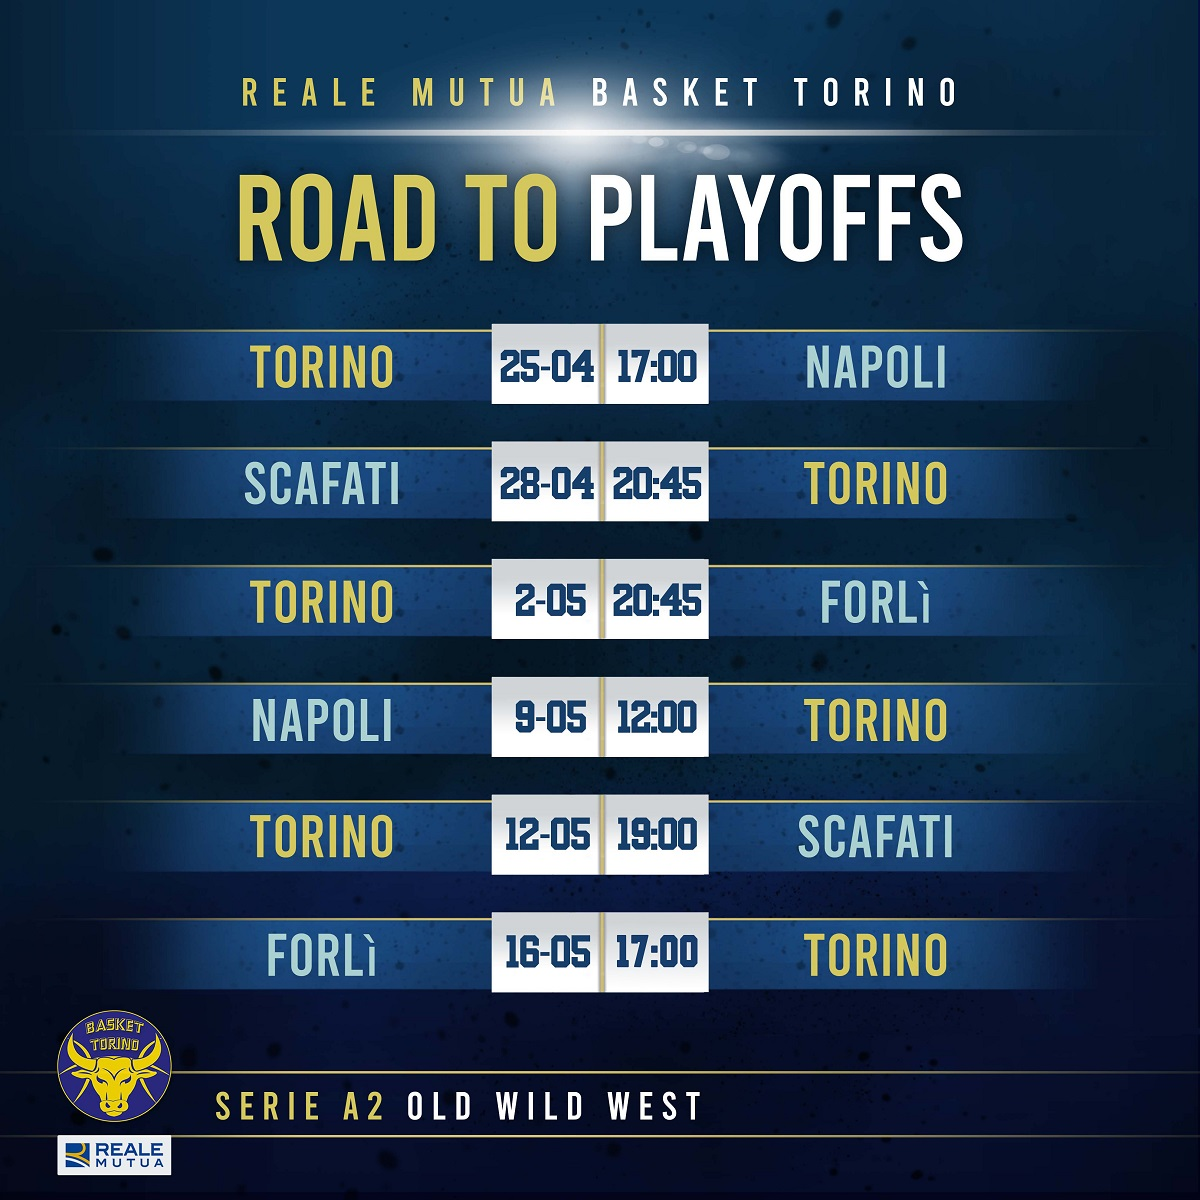 ROAD TO PLAYOFFS